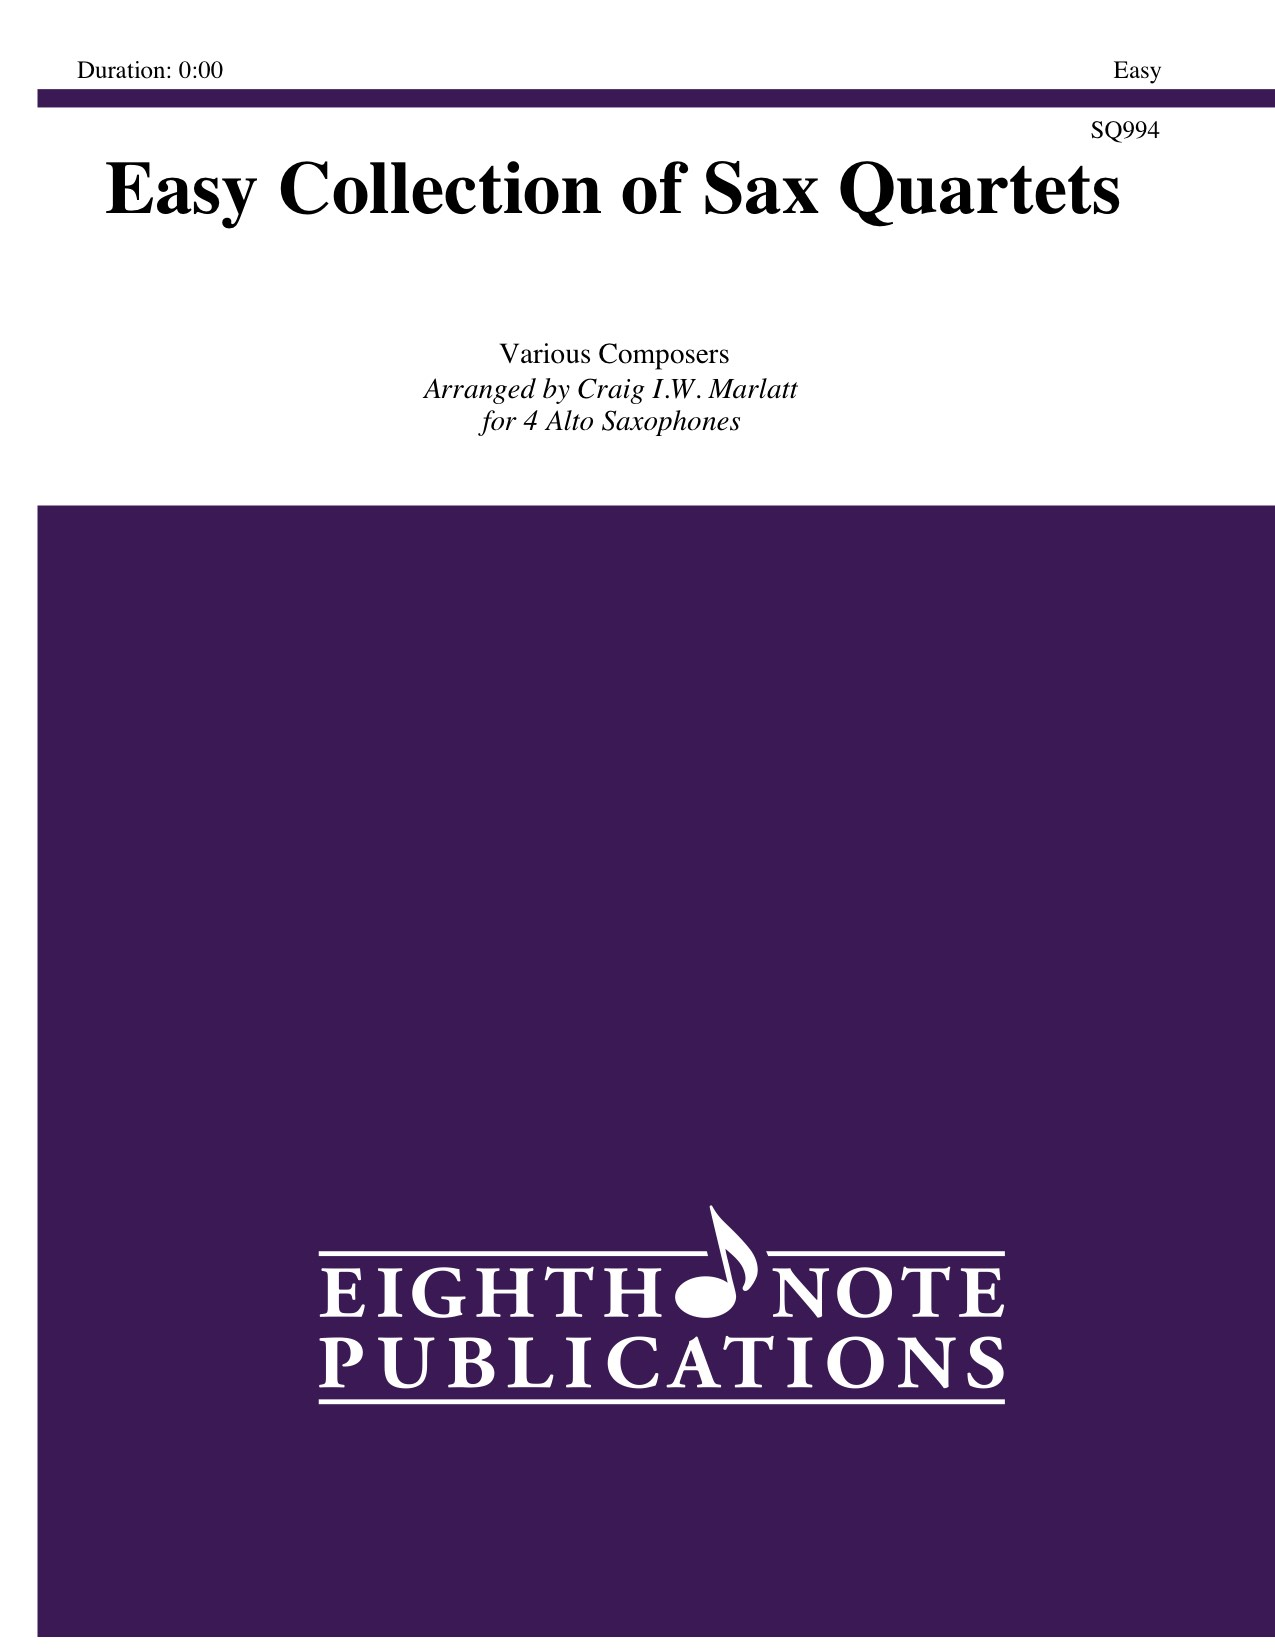 Easy Collection of Sax Quartets -  Various